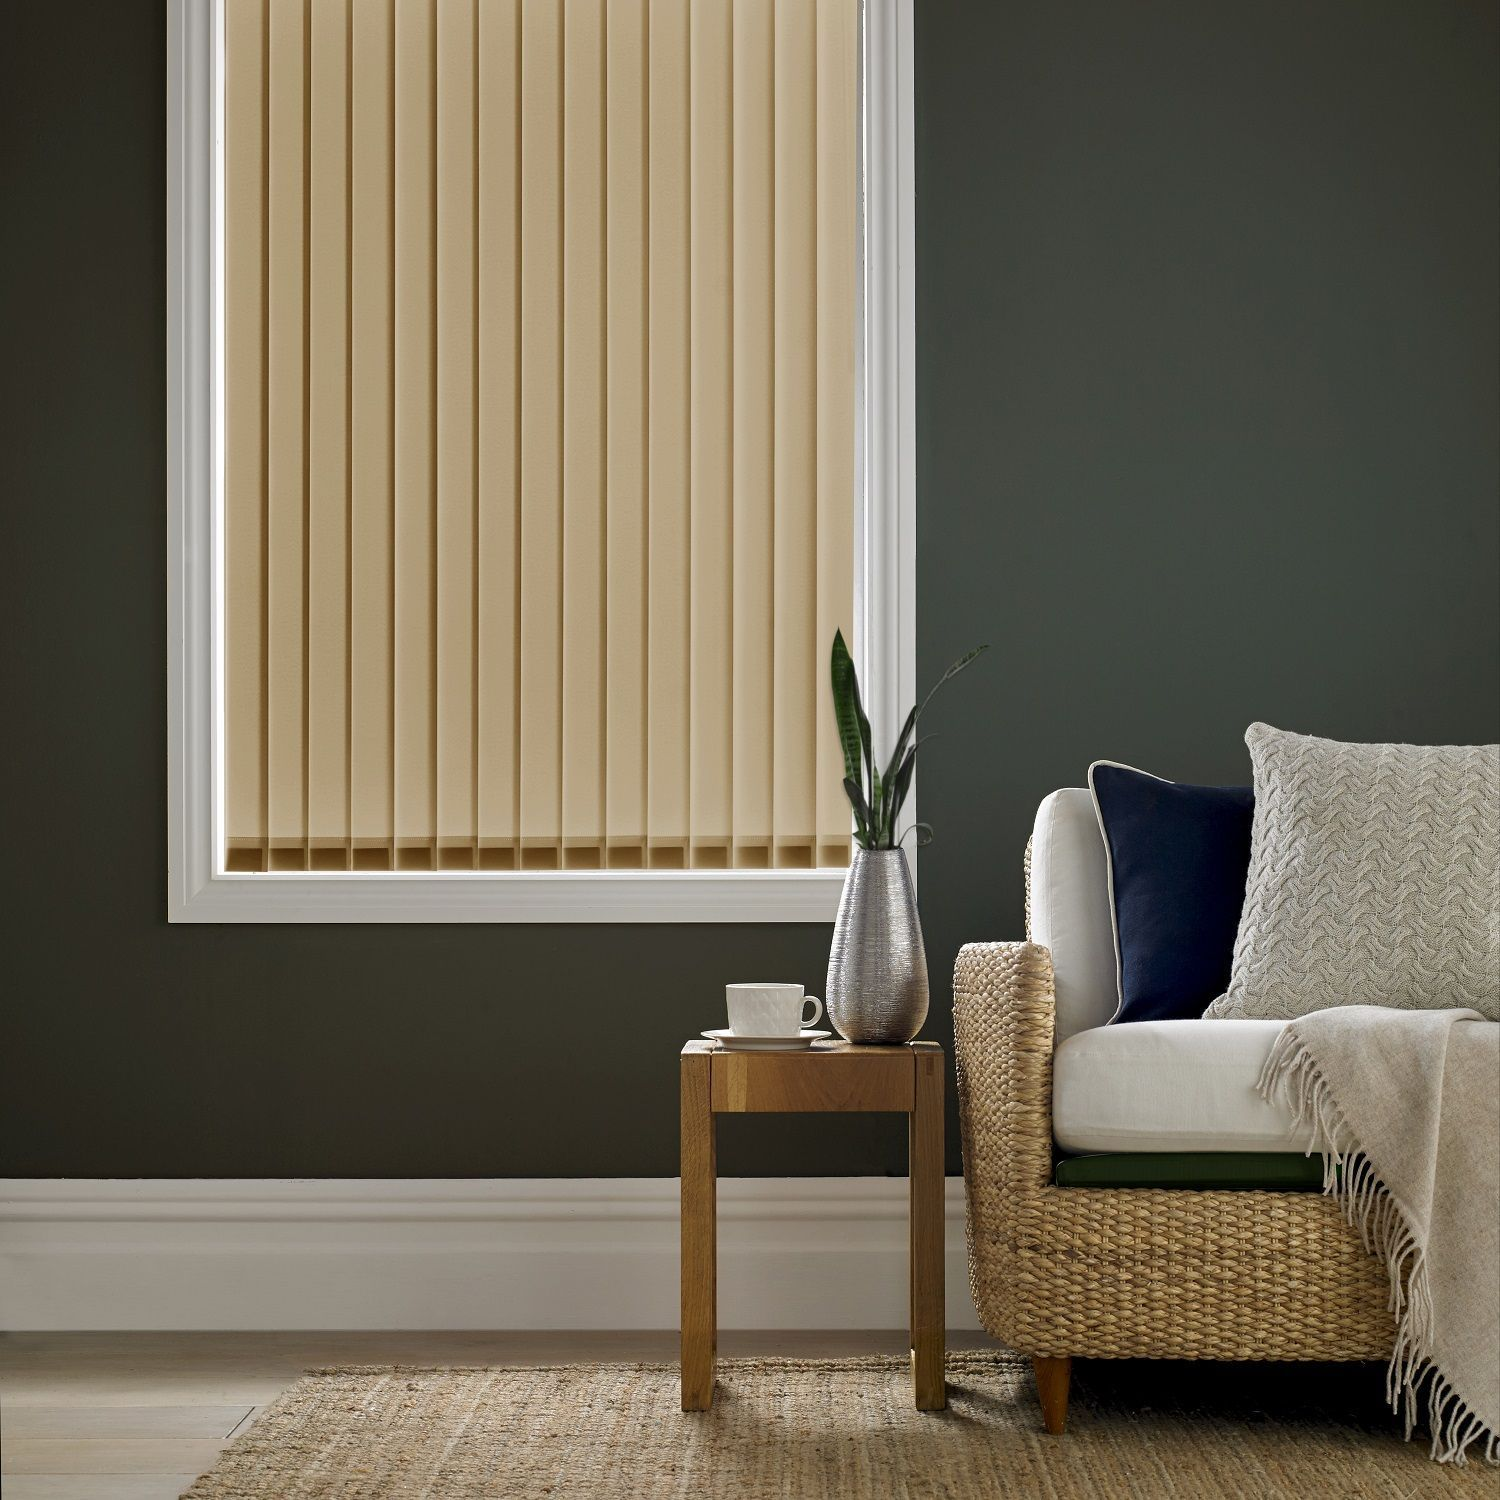 Incredible Ideas Living Room Blinds Cleanses Blinds For Windows Rollers Wooden Blinds Repurpose Grey Blinds Living Room Blinds Diy Blinds Curtains With Blinds #wooden #blinds #for #living #room